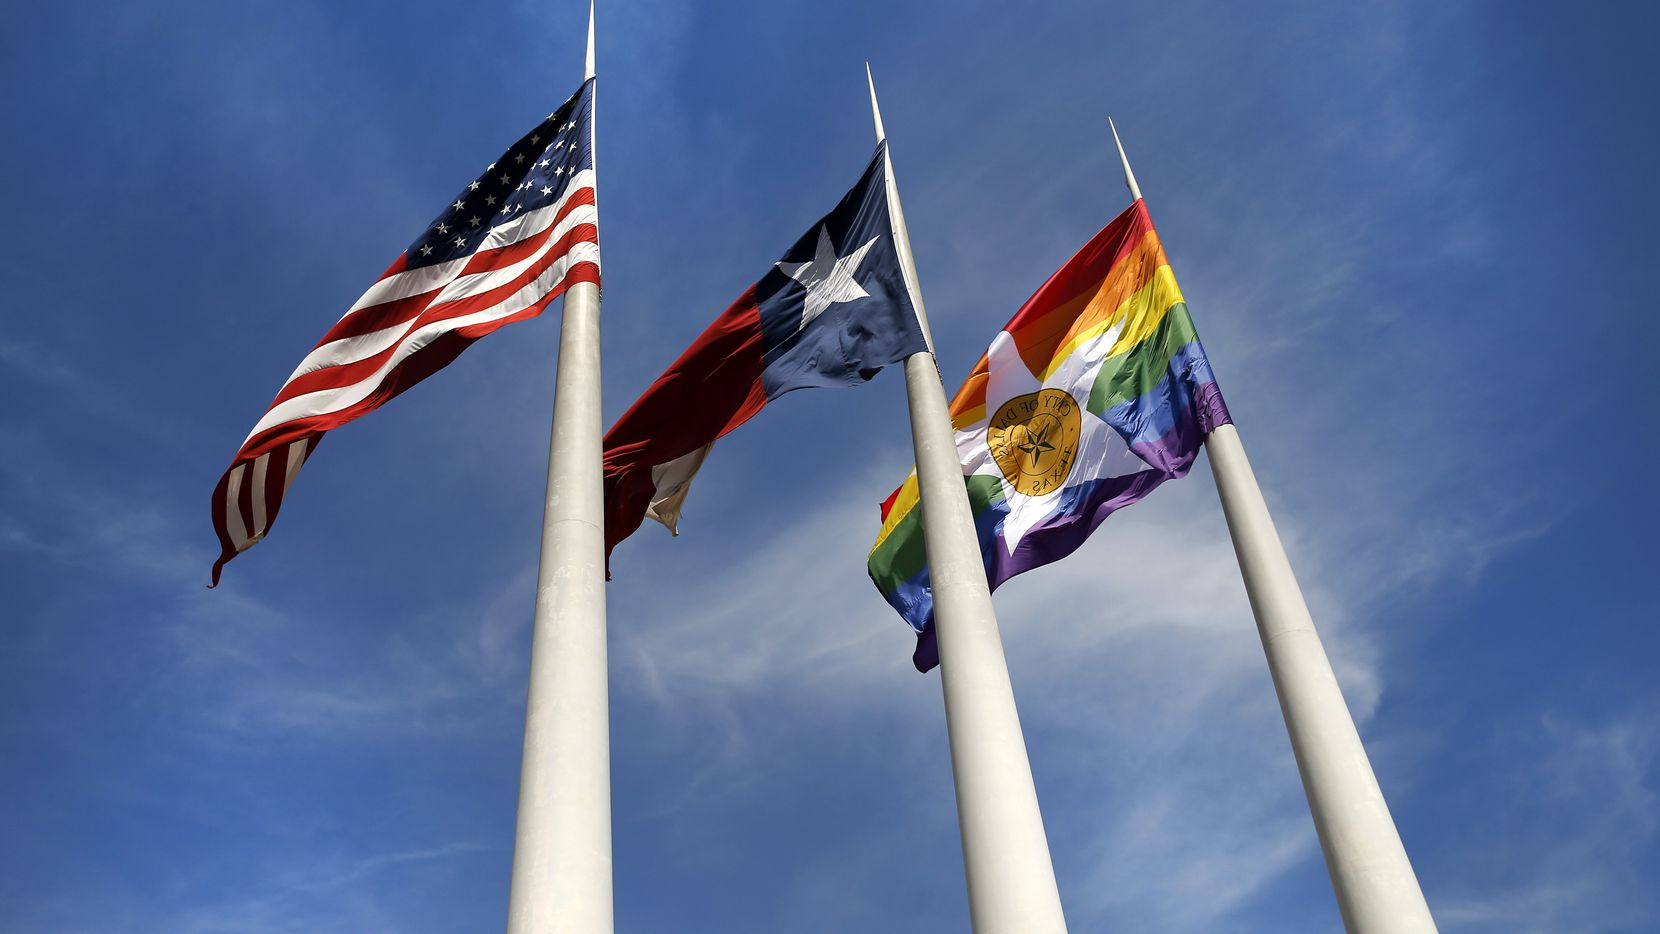 In honor of Pride Month, the City of Dallas' Pride flag (right) flies alongside the Texas and U.S. flags outside of City Hall in downtown Dallas, June 18, 2020. Dallas City Council passed a resolution directing the city manager to fly the flag the rest of the month. The flag will also fly for the month of June going forward. (Tom Fox/The Dallas Morning News)